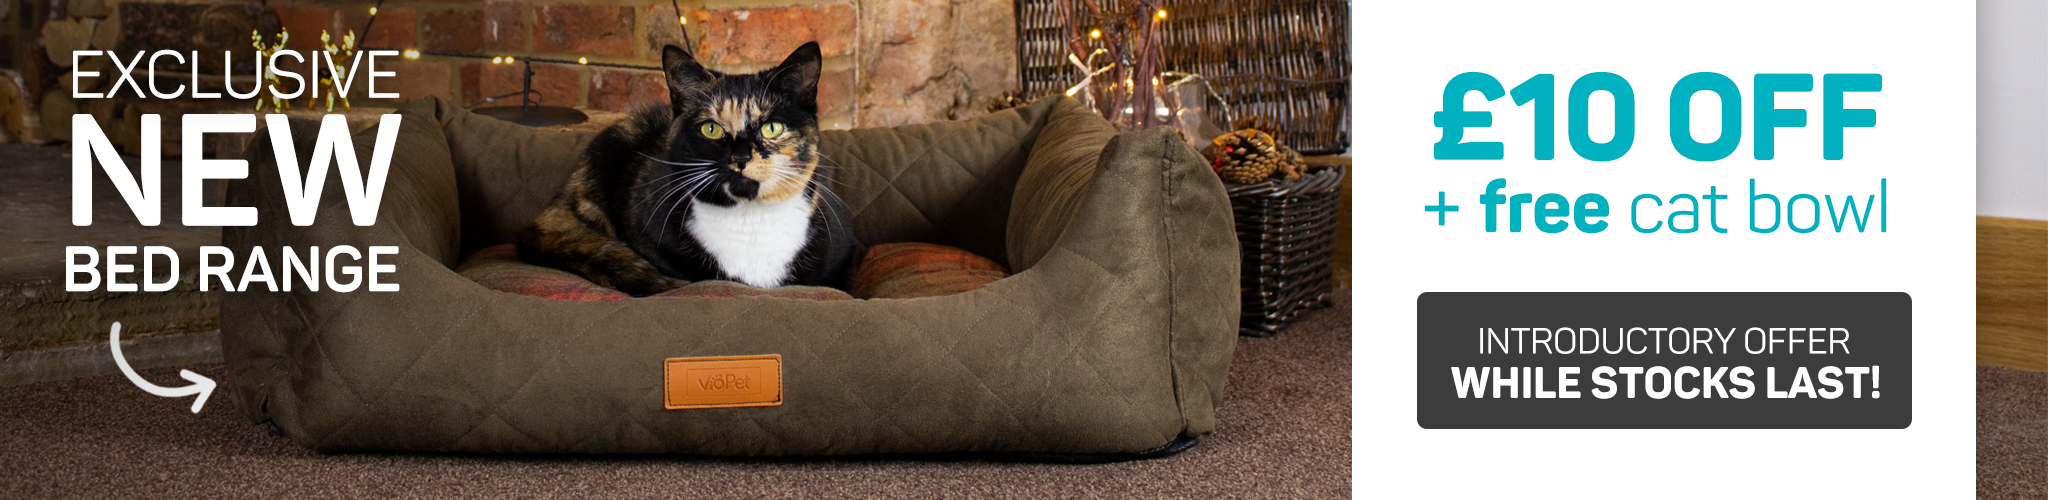 cat christmas page ob bed launch £10 off free bowl